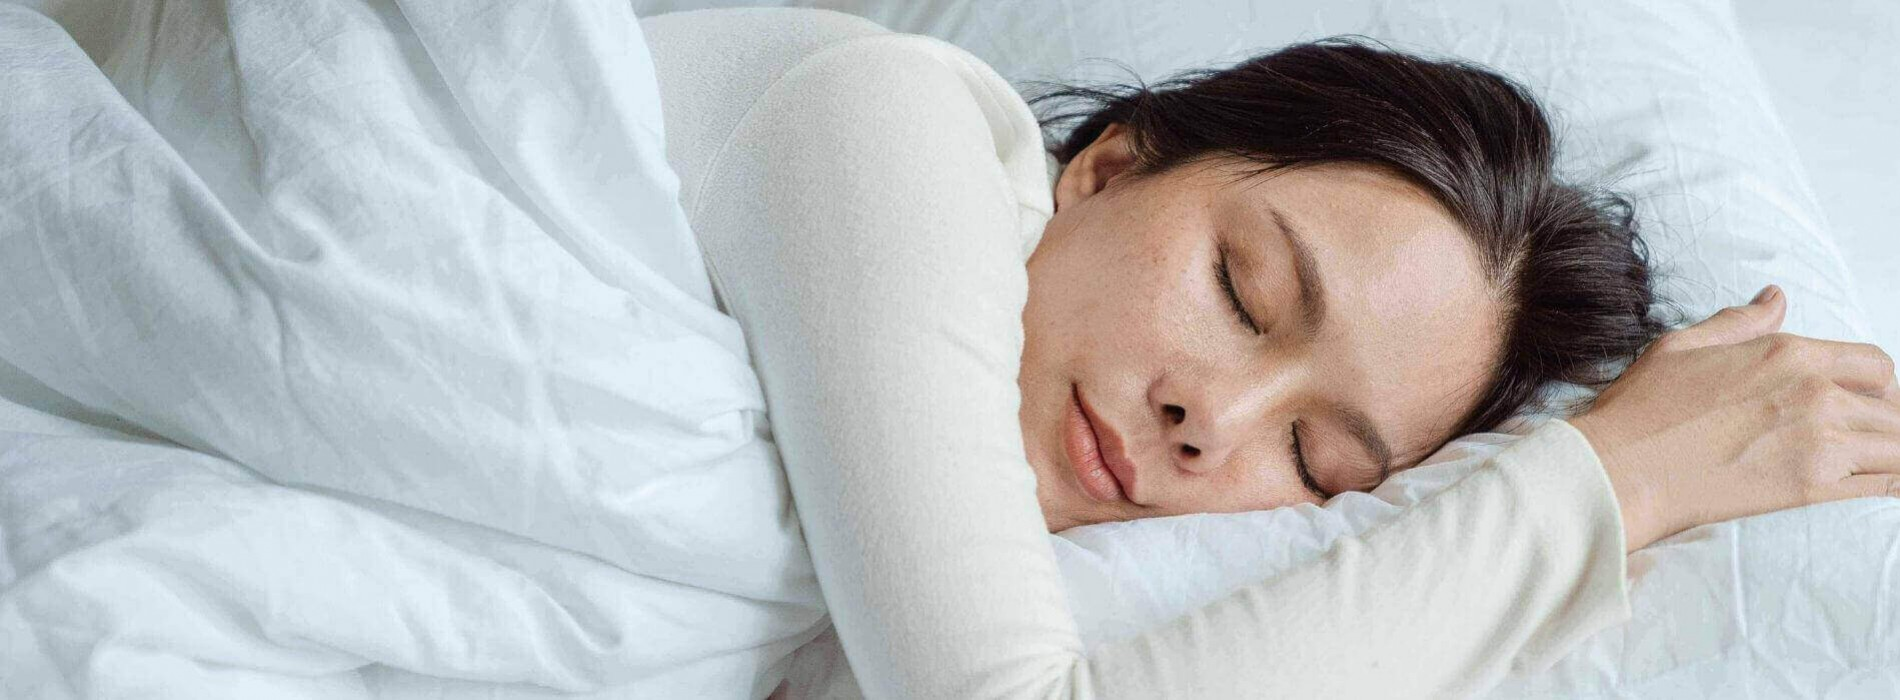 The Anti-Aging Powers of Sleep by Dr. Breus